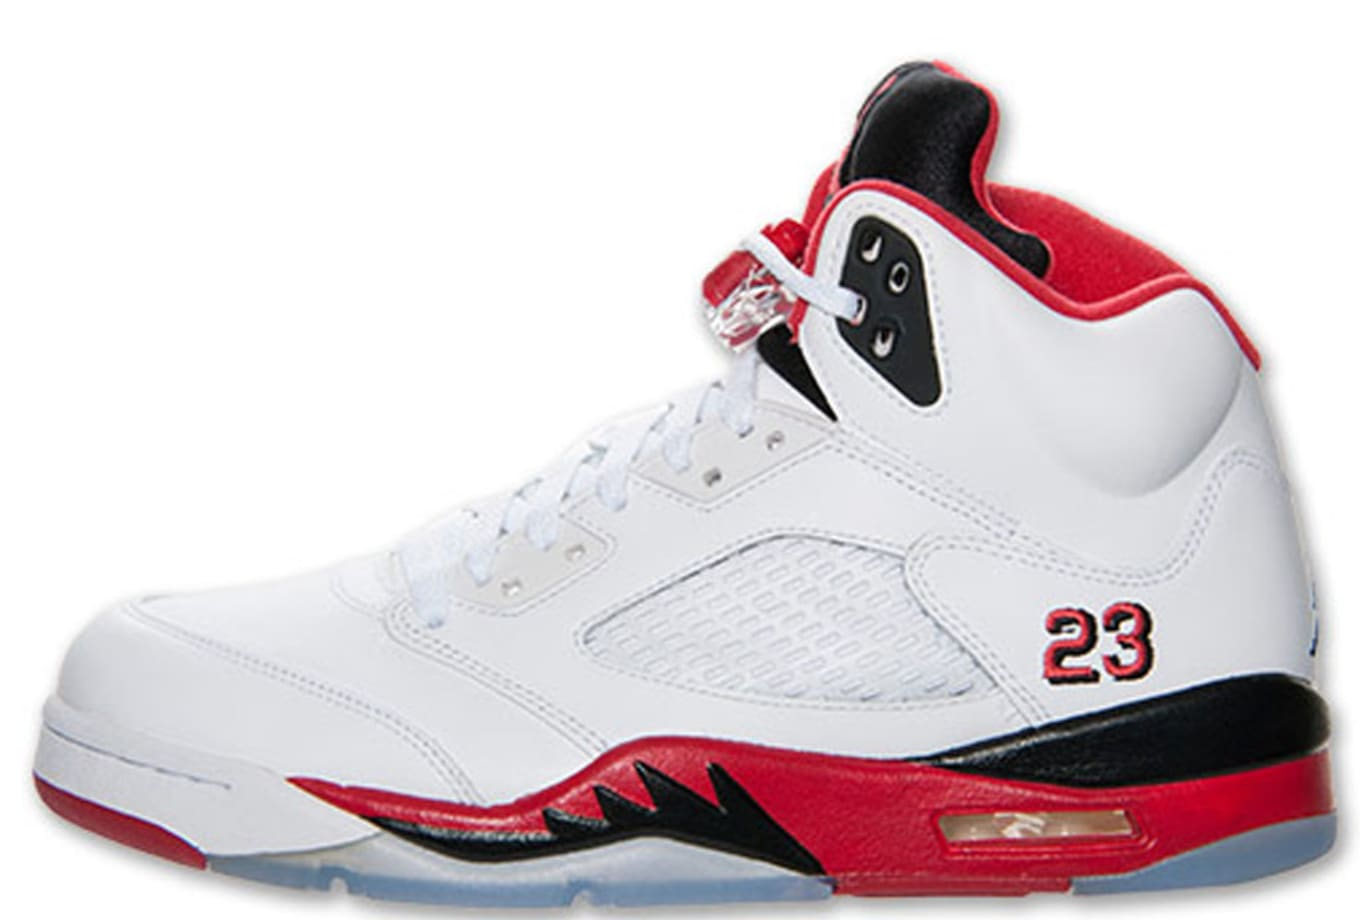 939debbf39cf Air Jordan 5 Retro  Fire Red